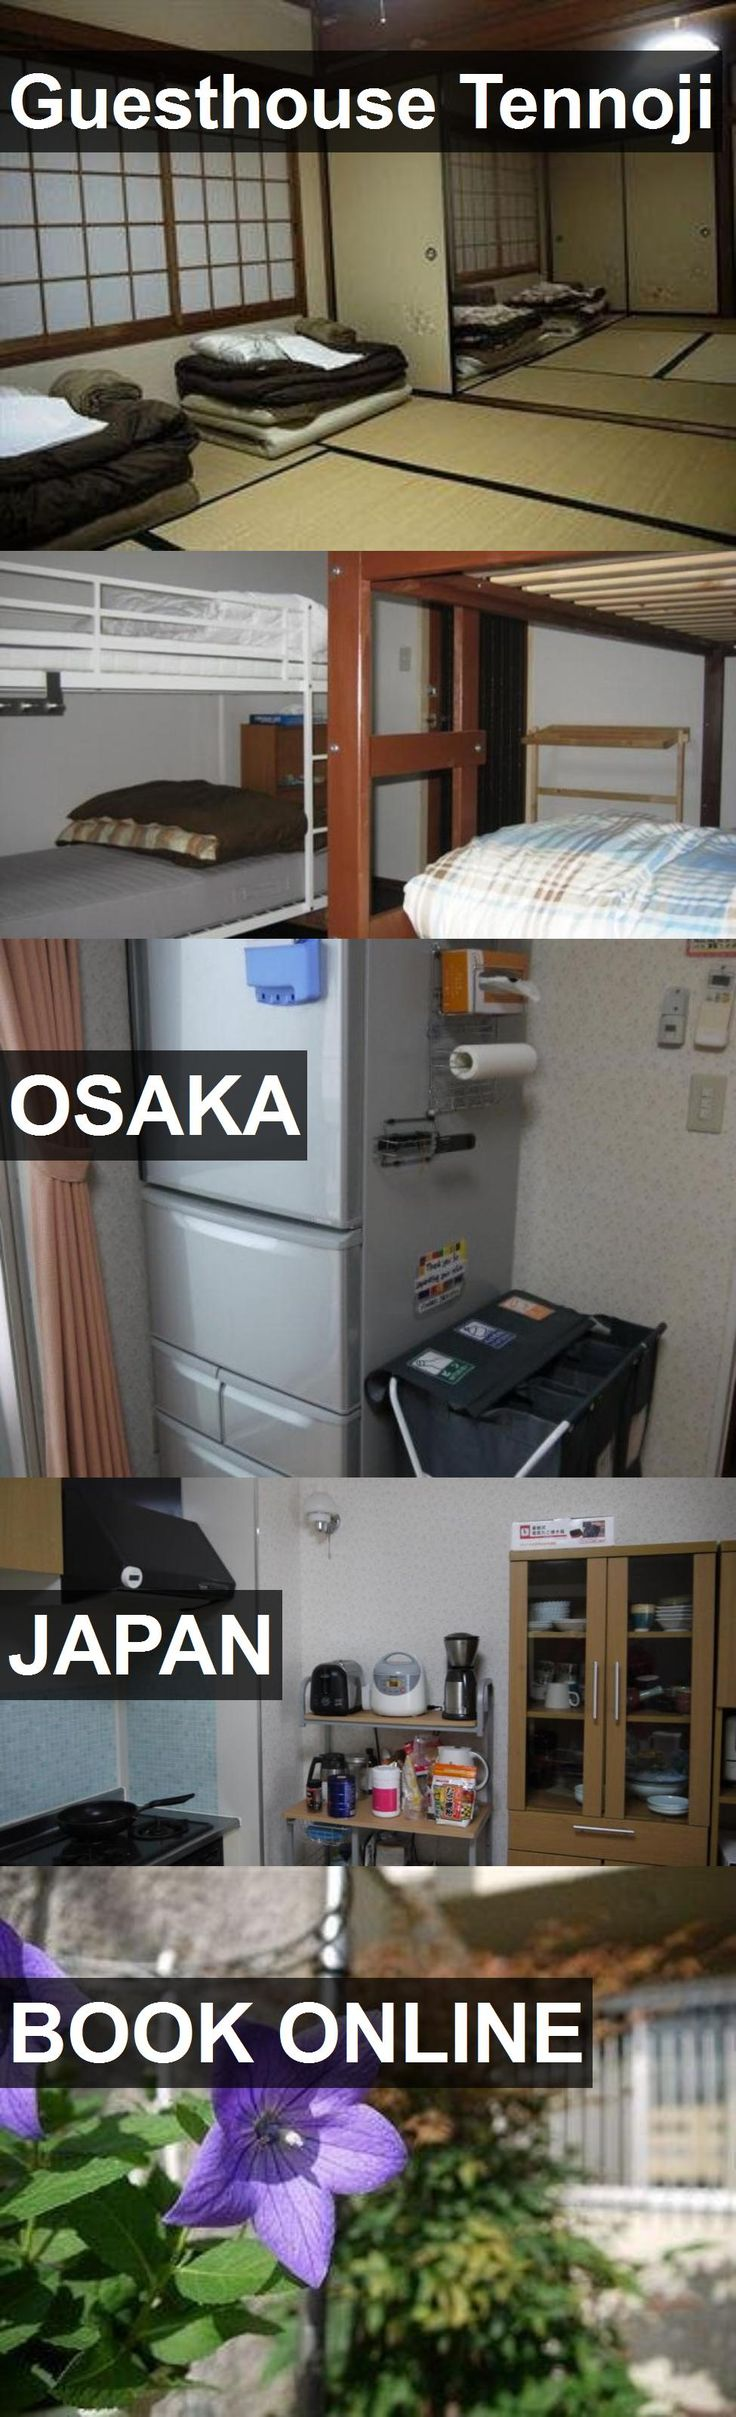 Hotel Guesthouse Tennoji in Osaka, Japan. For more information, photos, reviews and best prices please follow the link. #Japan #Osaka #travel #vacation #hotel